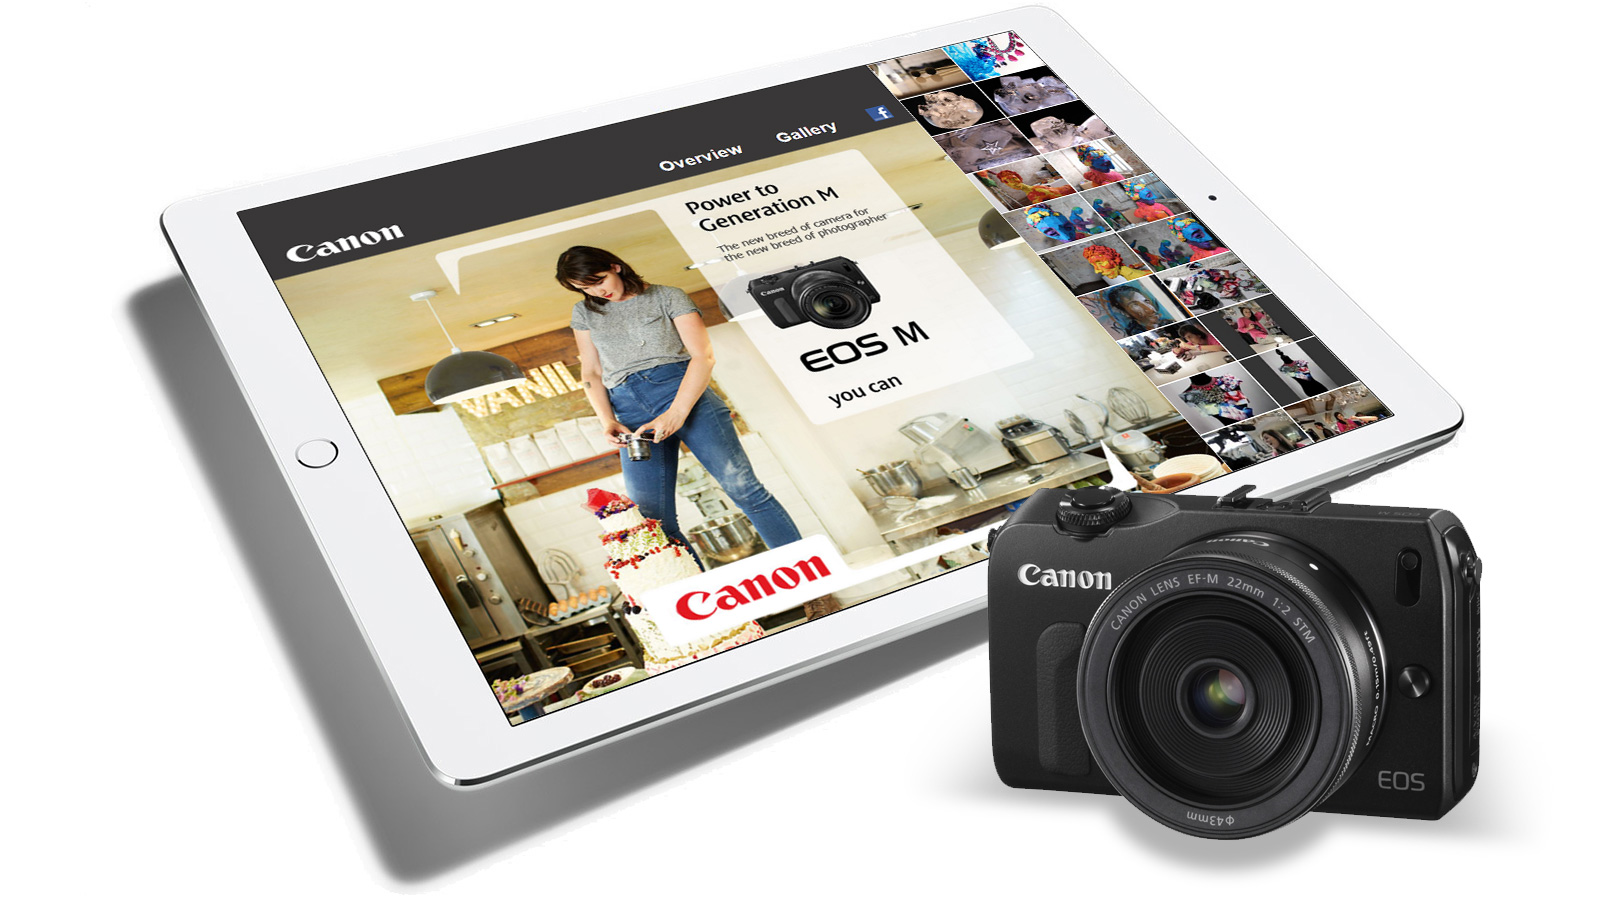 canon-tablet-ad